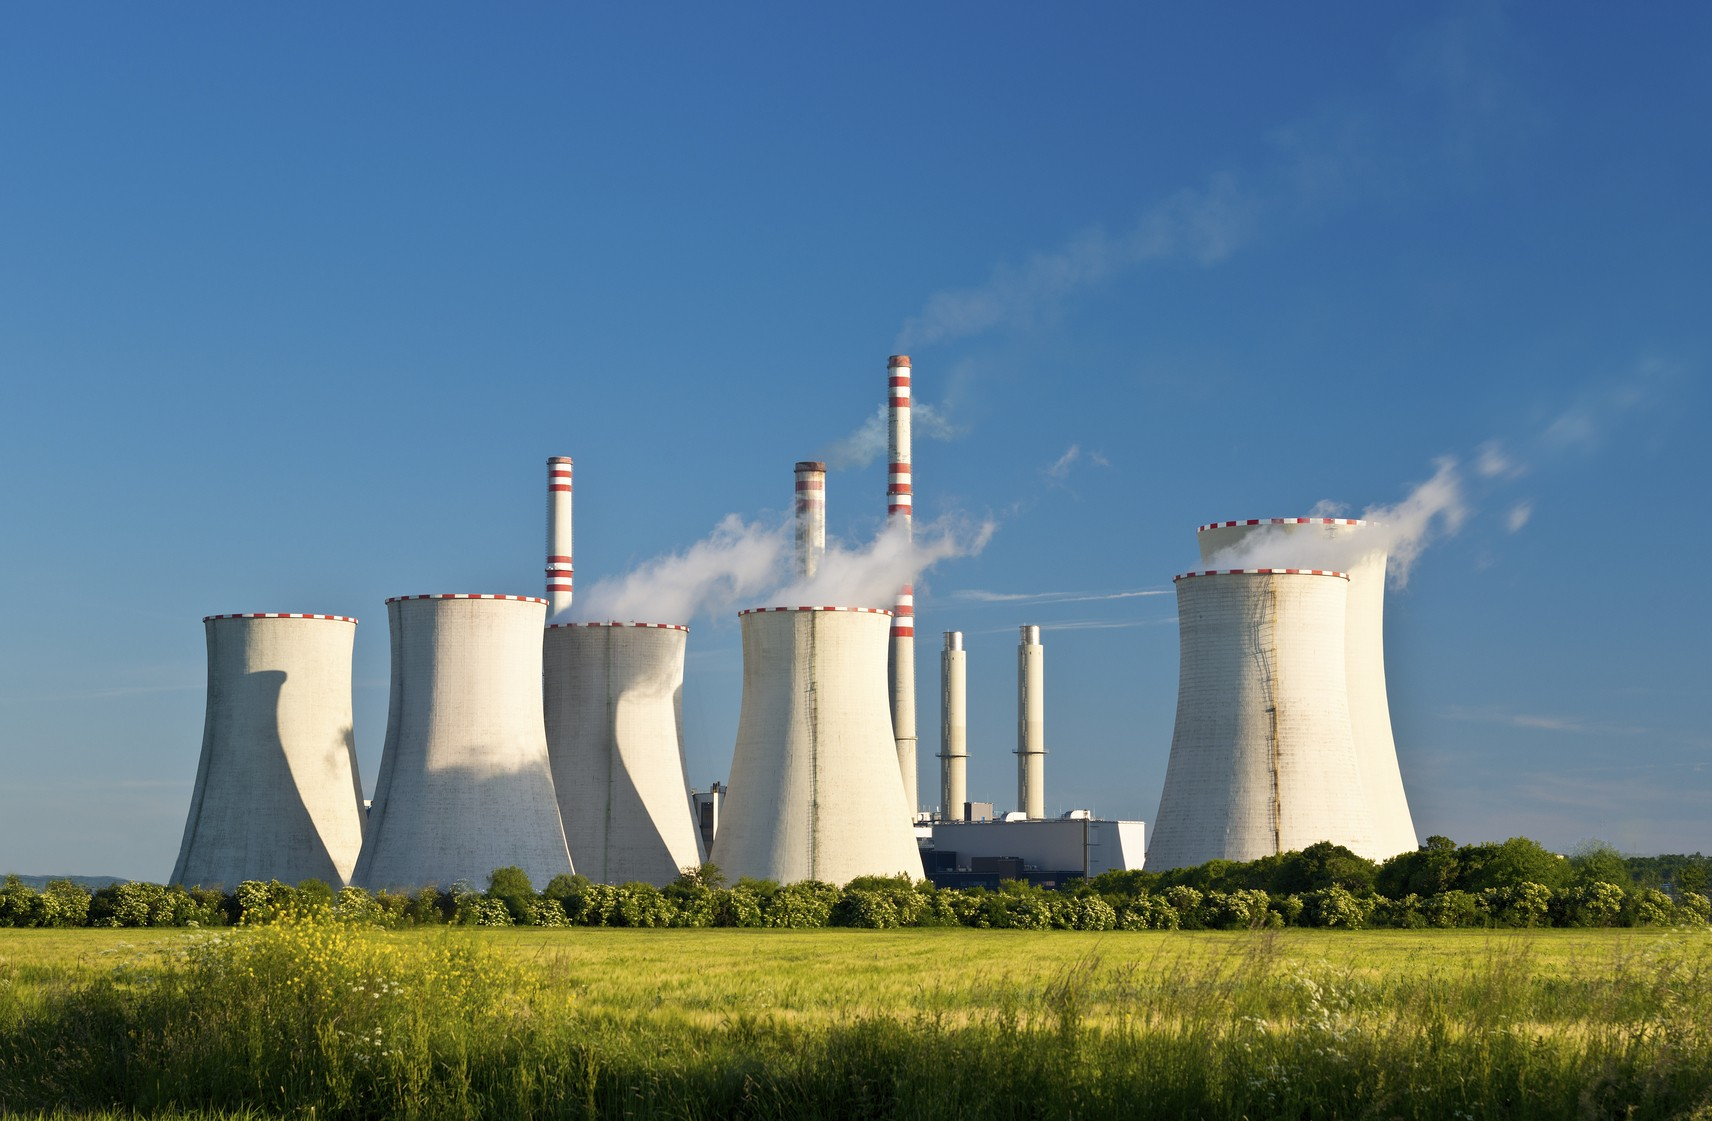 Coal Power Value Downplayed By Conservative Policy Group